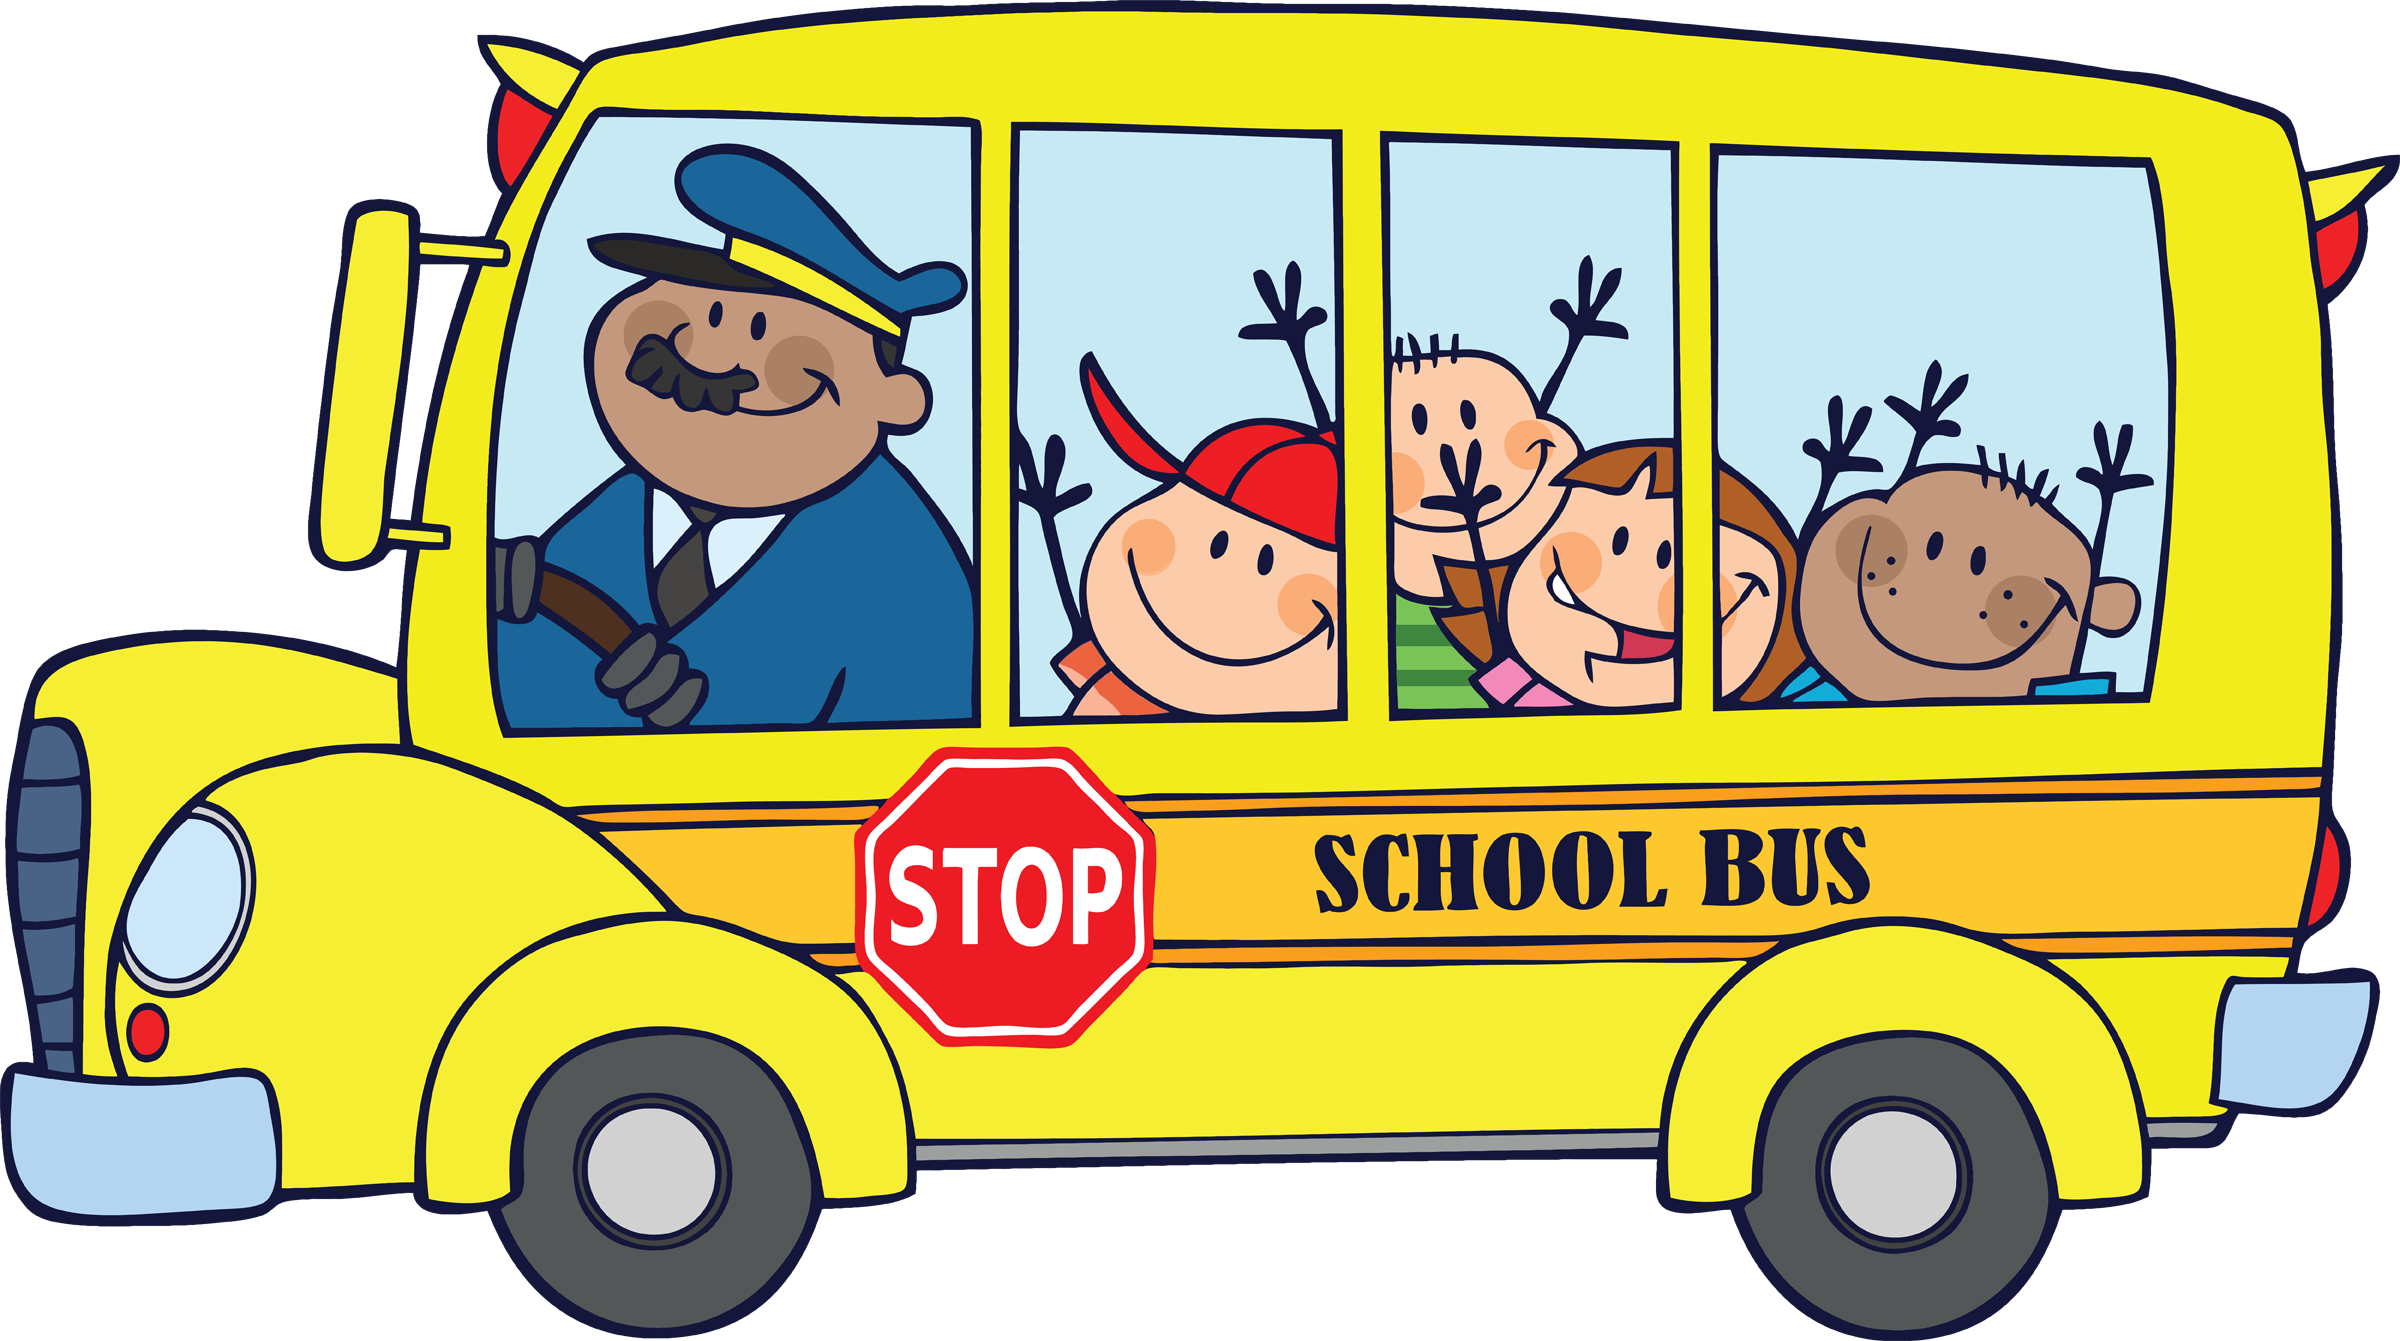 78 Best ideas about School Bus Clipart o-78 Best ideas about School Bus Clipart on Pinterest | Clip art school, People of the book and Christmas clipart-2